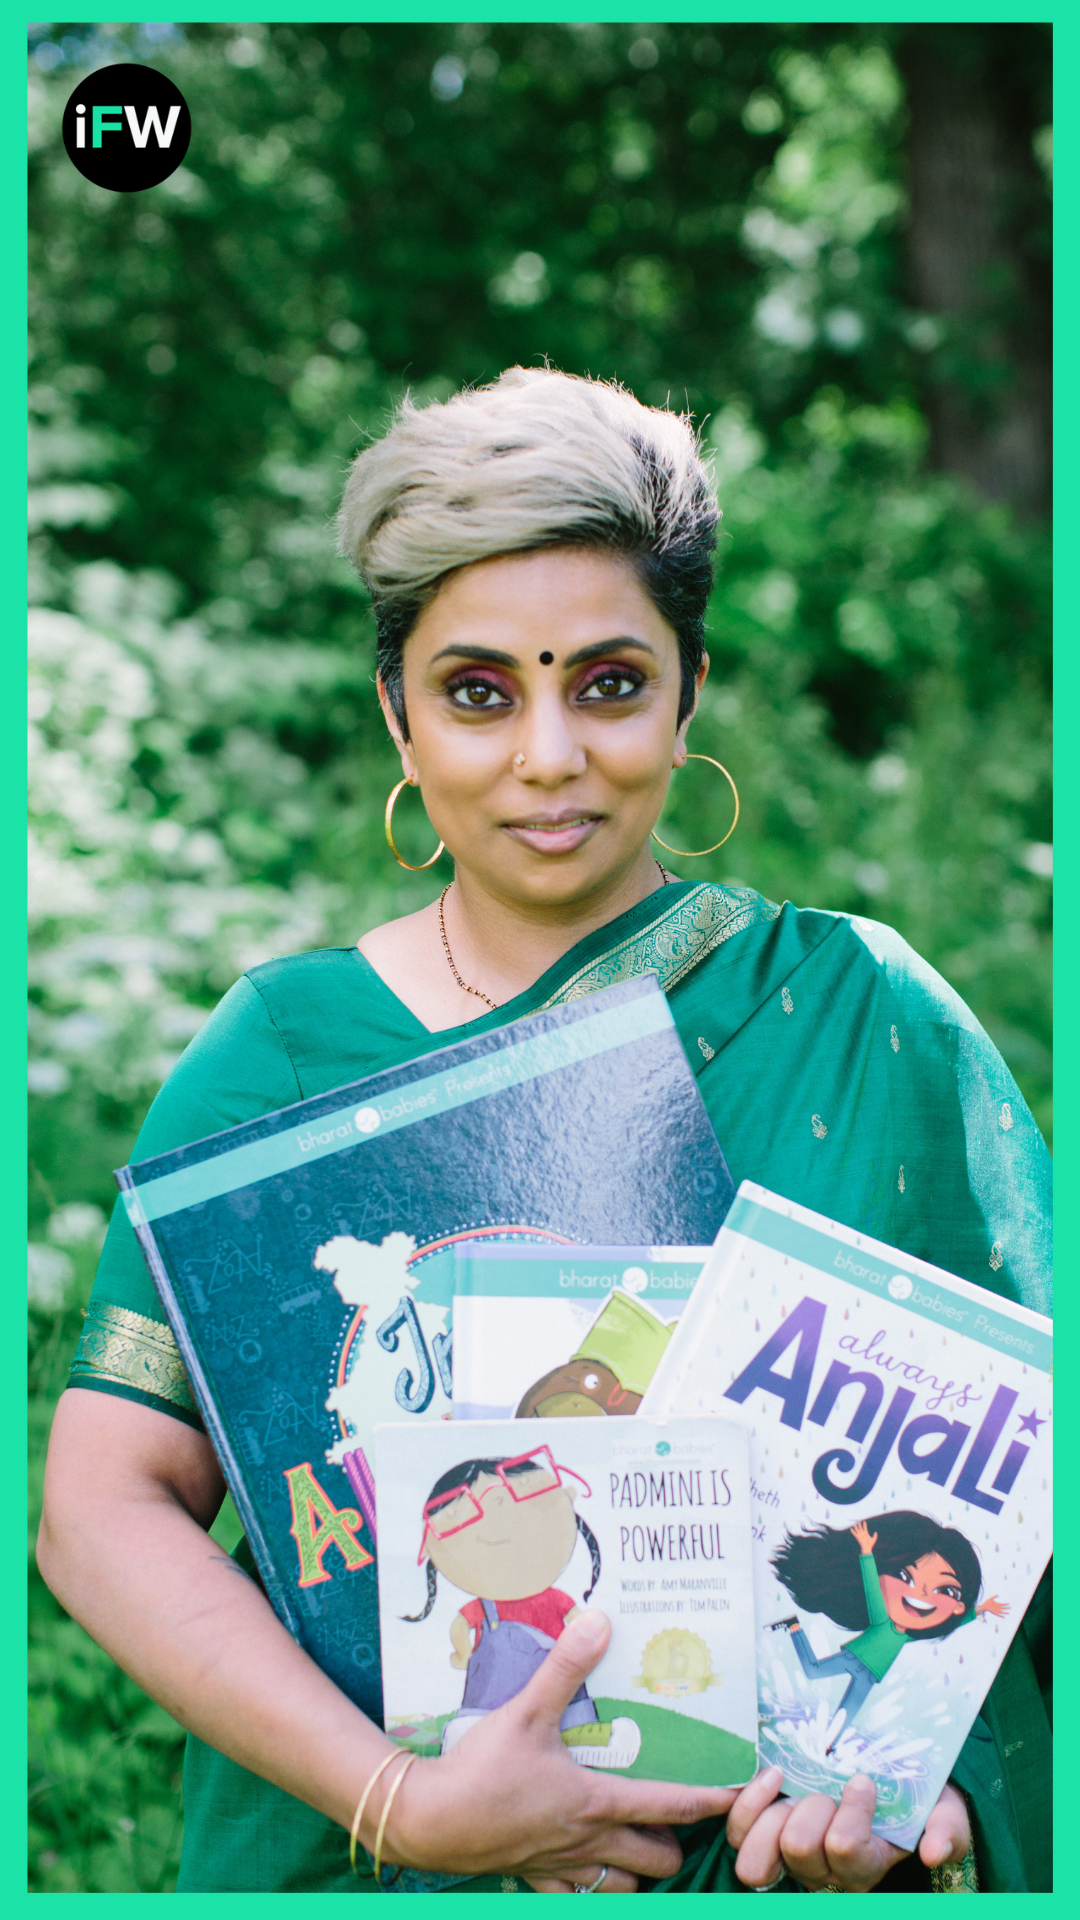 """Hands down, the community. The support is intense and amazing, its something you never knew you were missing."" - Sailaja Joshi, Founder of Bharat Babies -"